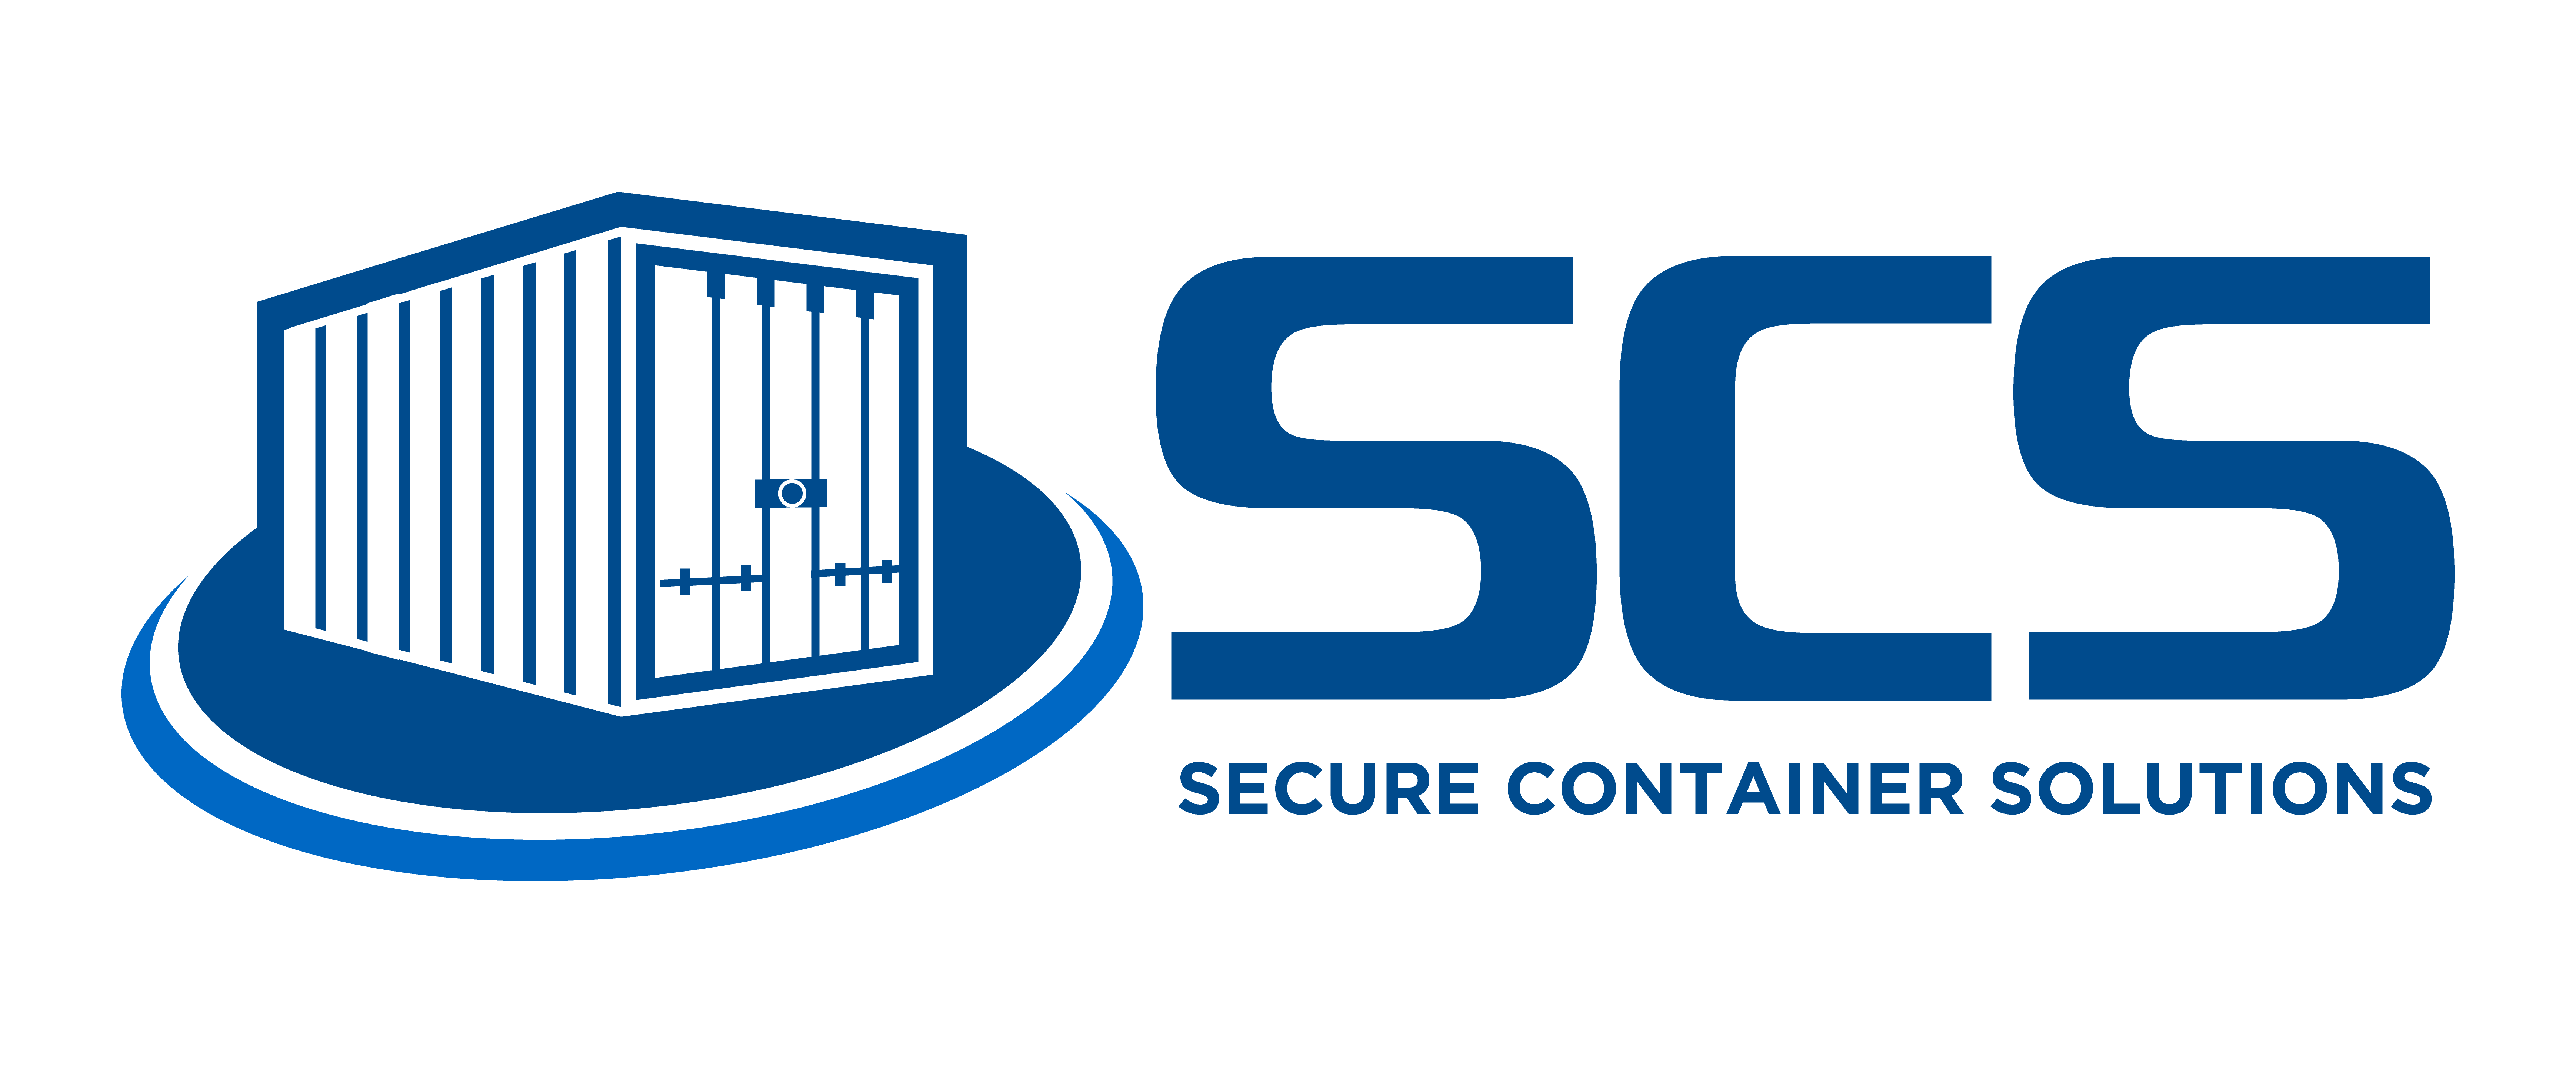 Secure Container Solutions & Habitat for Humanity Halton-Mississauga: A partnership for good